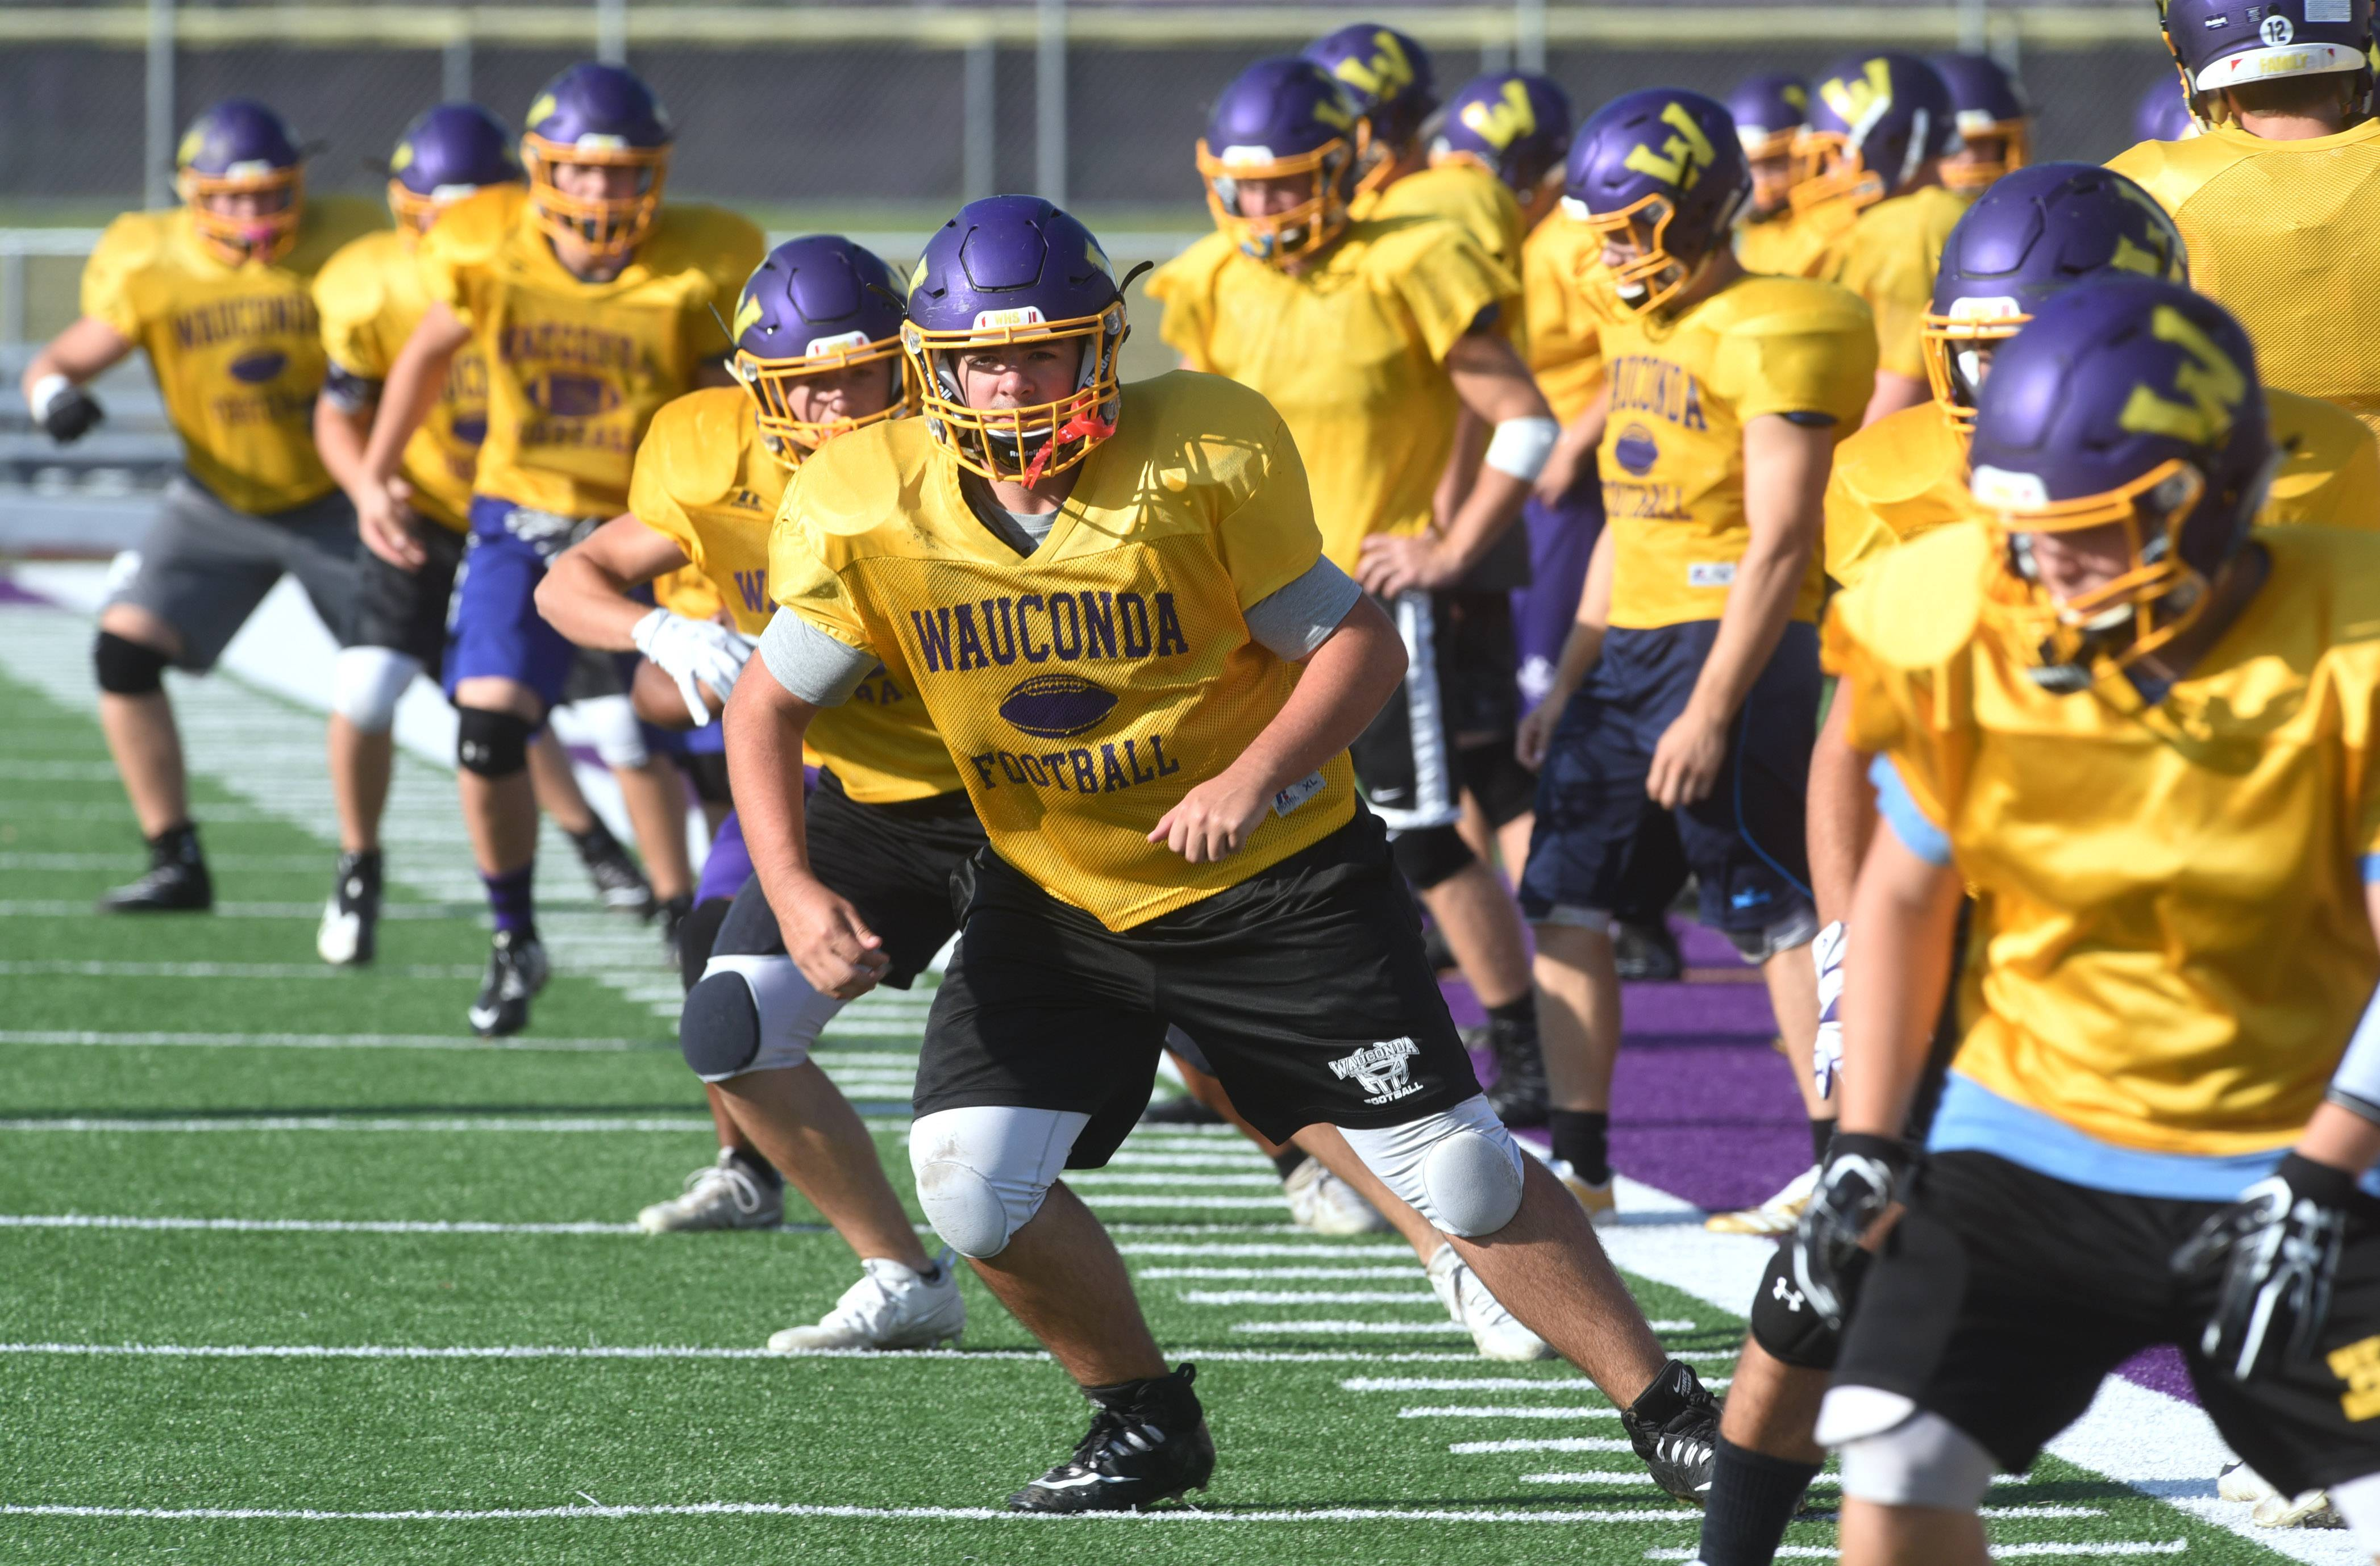 Wauconda football players practice Wednesday on the turf.